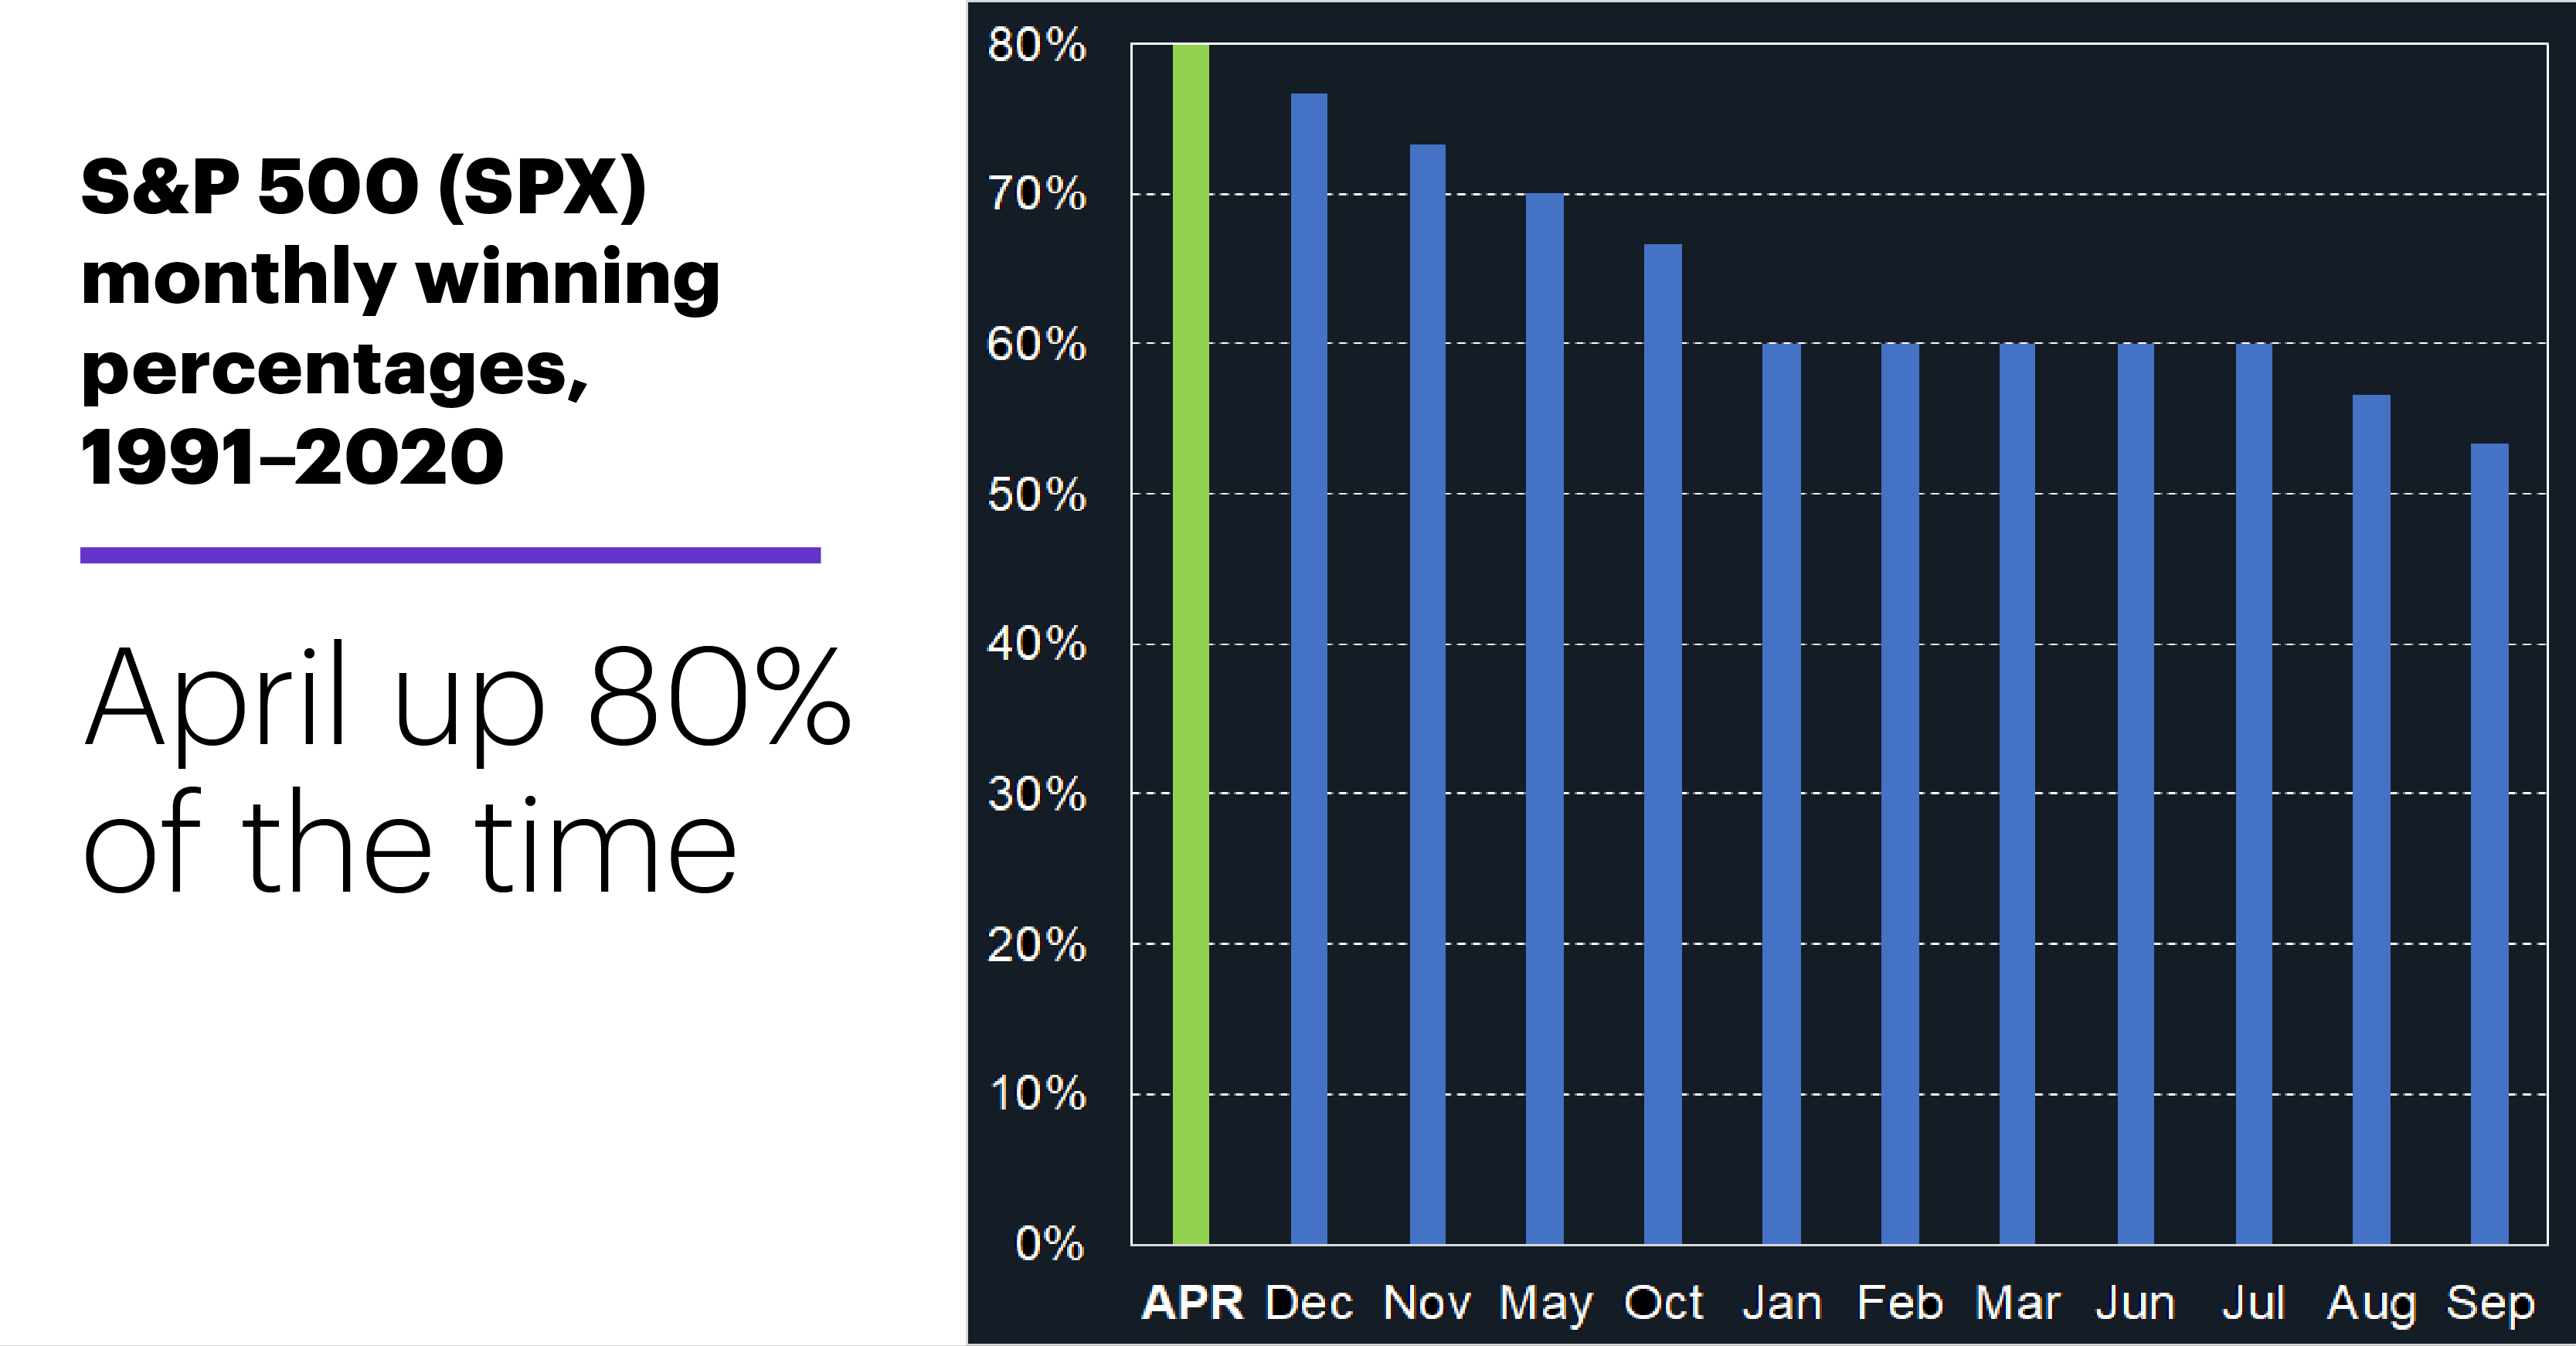 Chart 1: S&P 500 (SPX) monthly winning percentages, 1991–2020. Stock market seasonal patterns. April up 80% of the time.